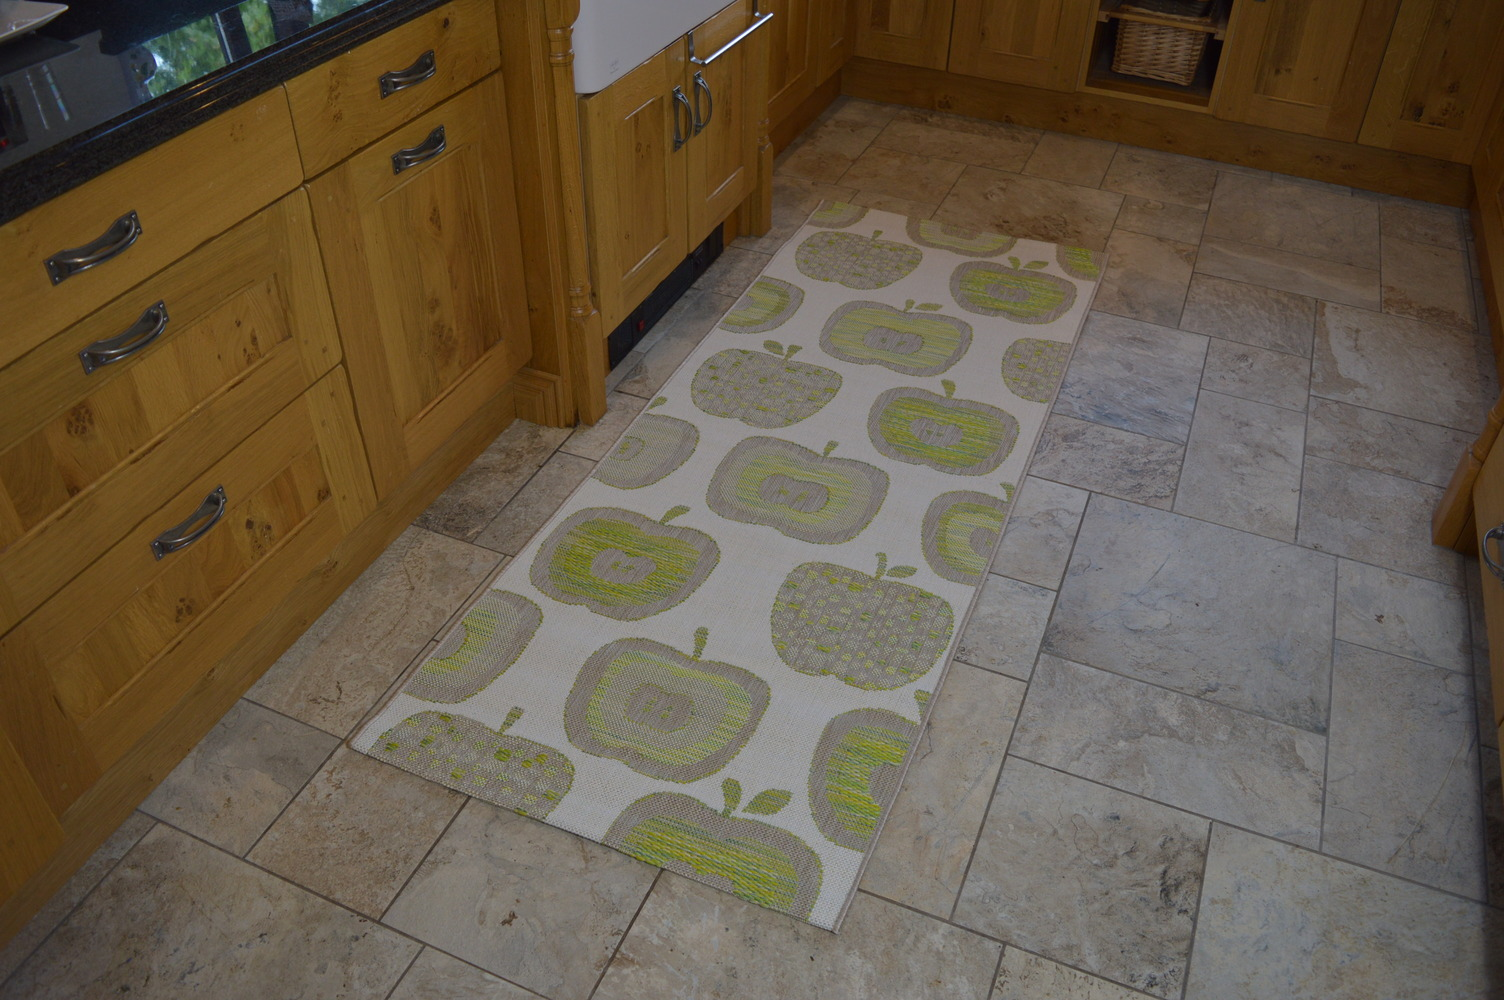 modern kitchen rugs - green apples mat - martin phillips carpets